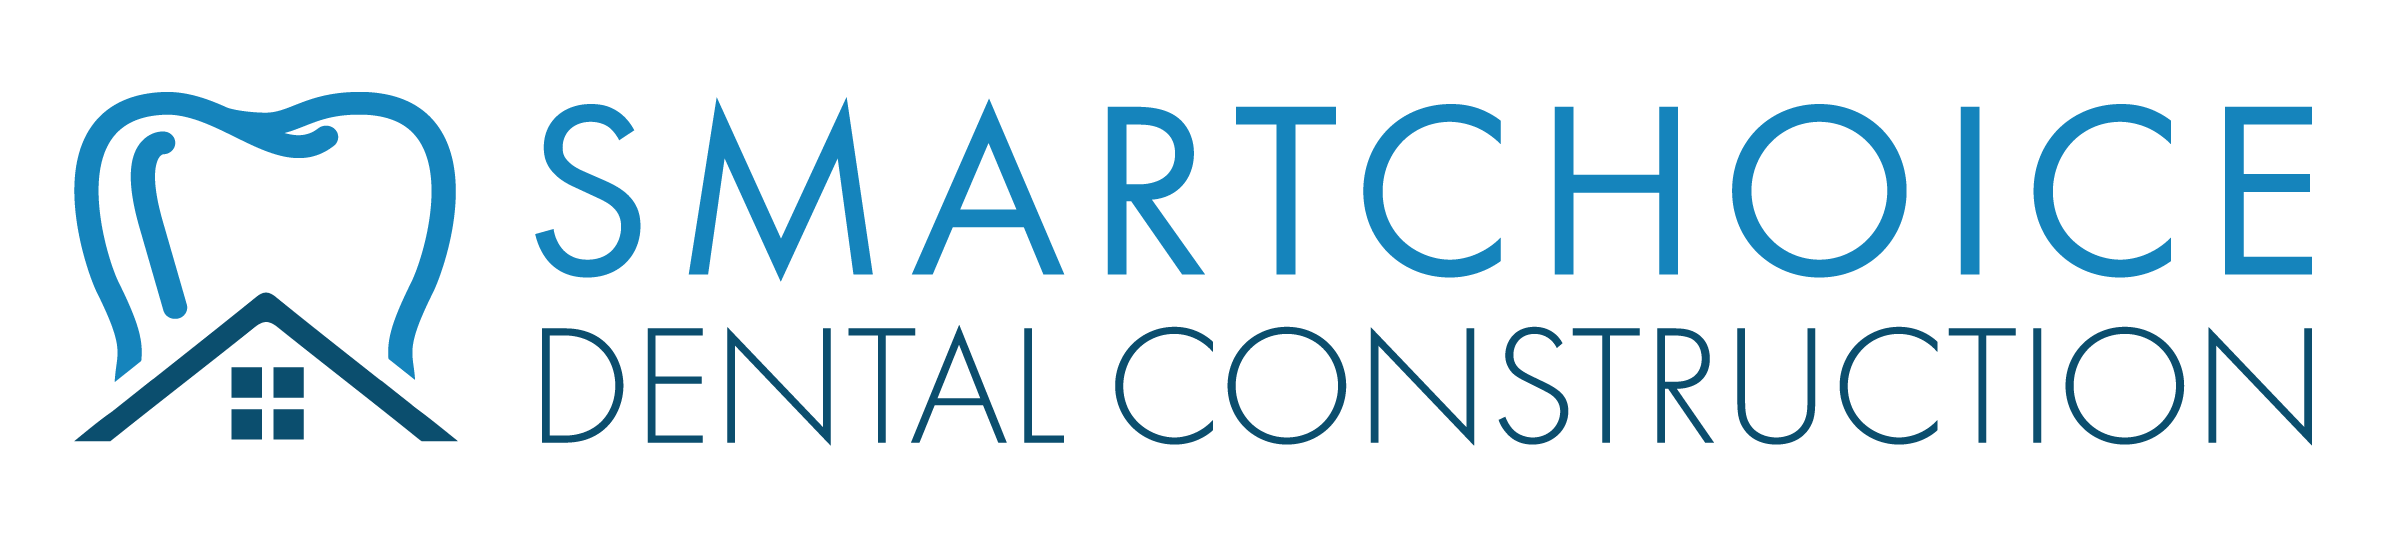 smartchoice dental construction logo